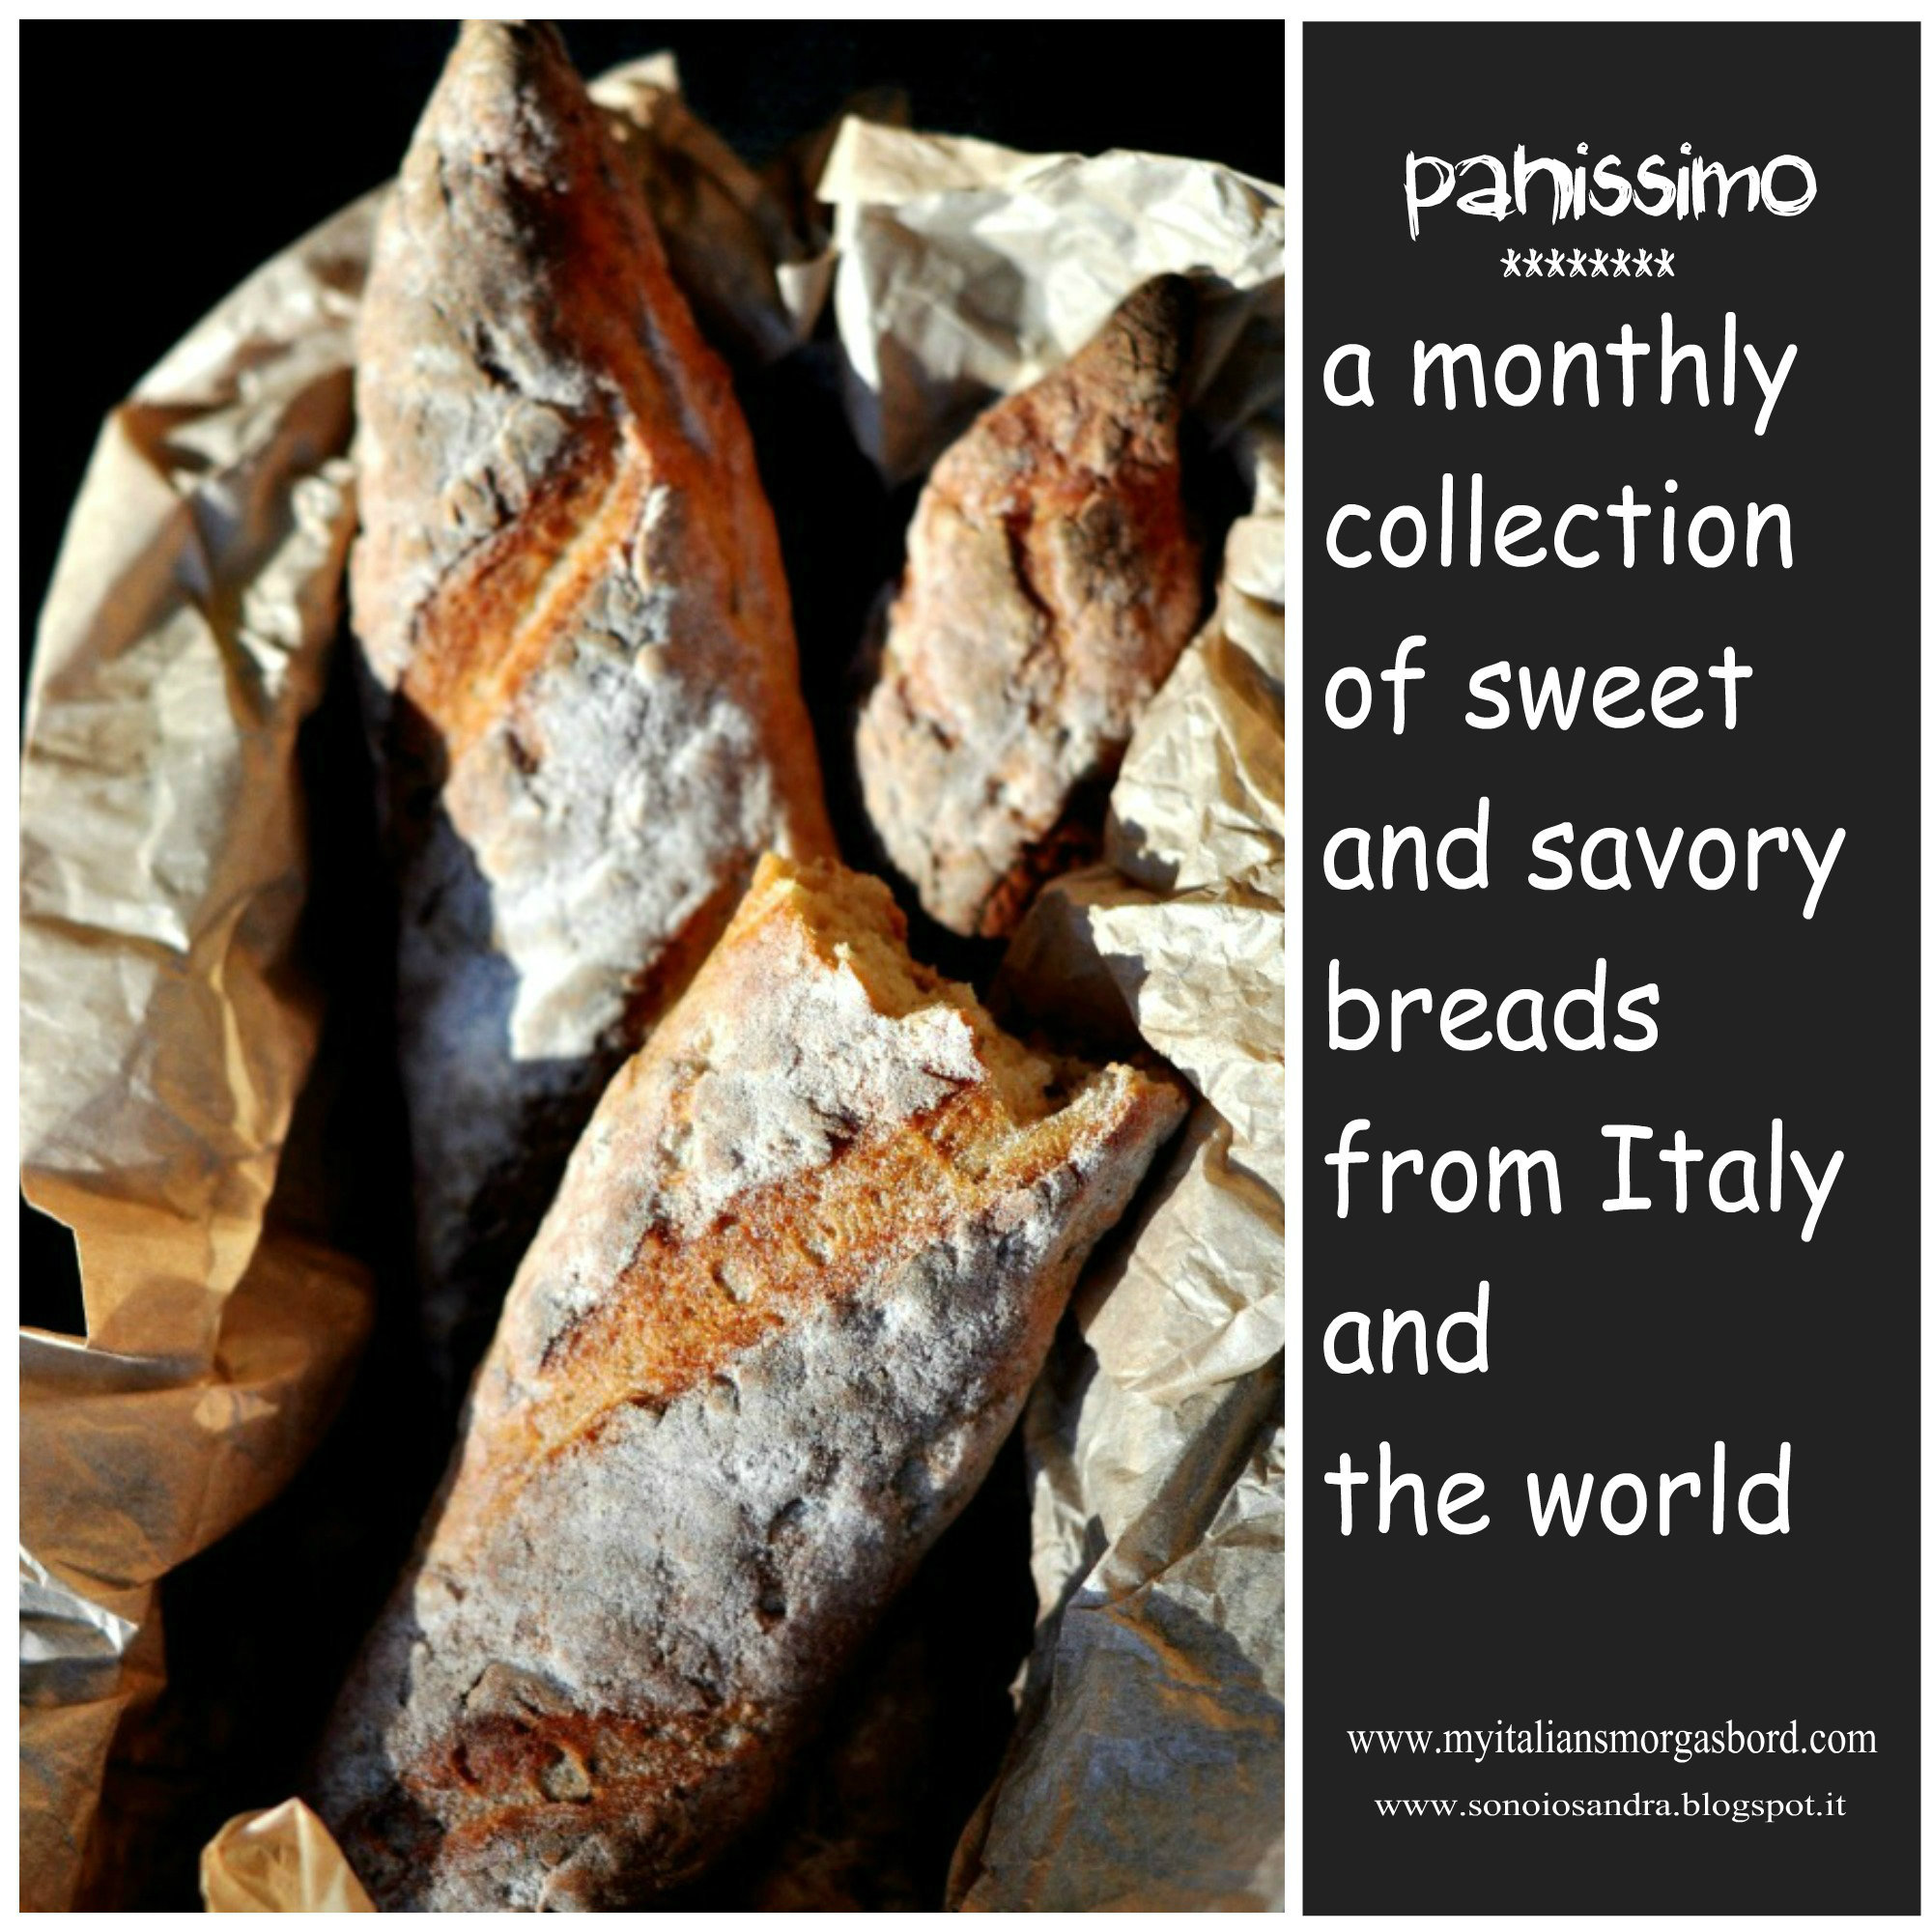 A monthly collection of breads from Italy and the world